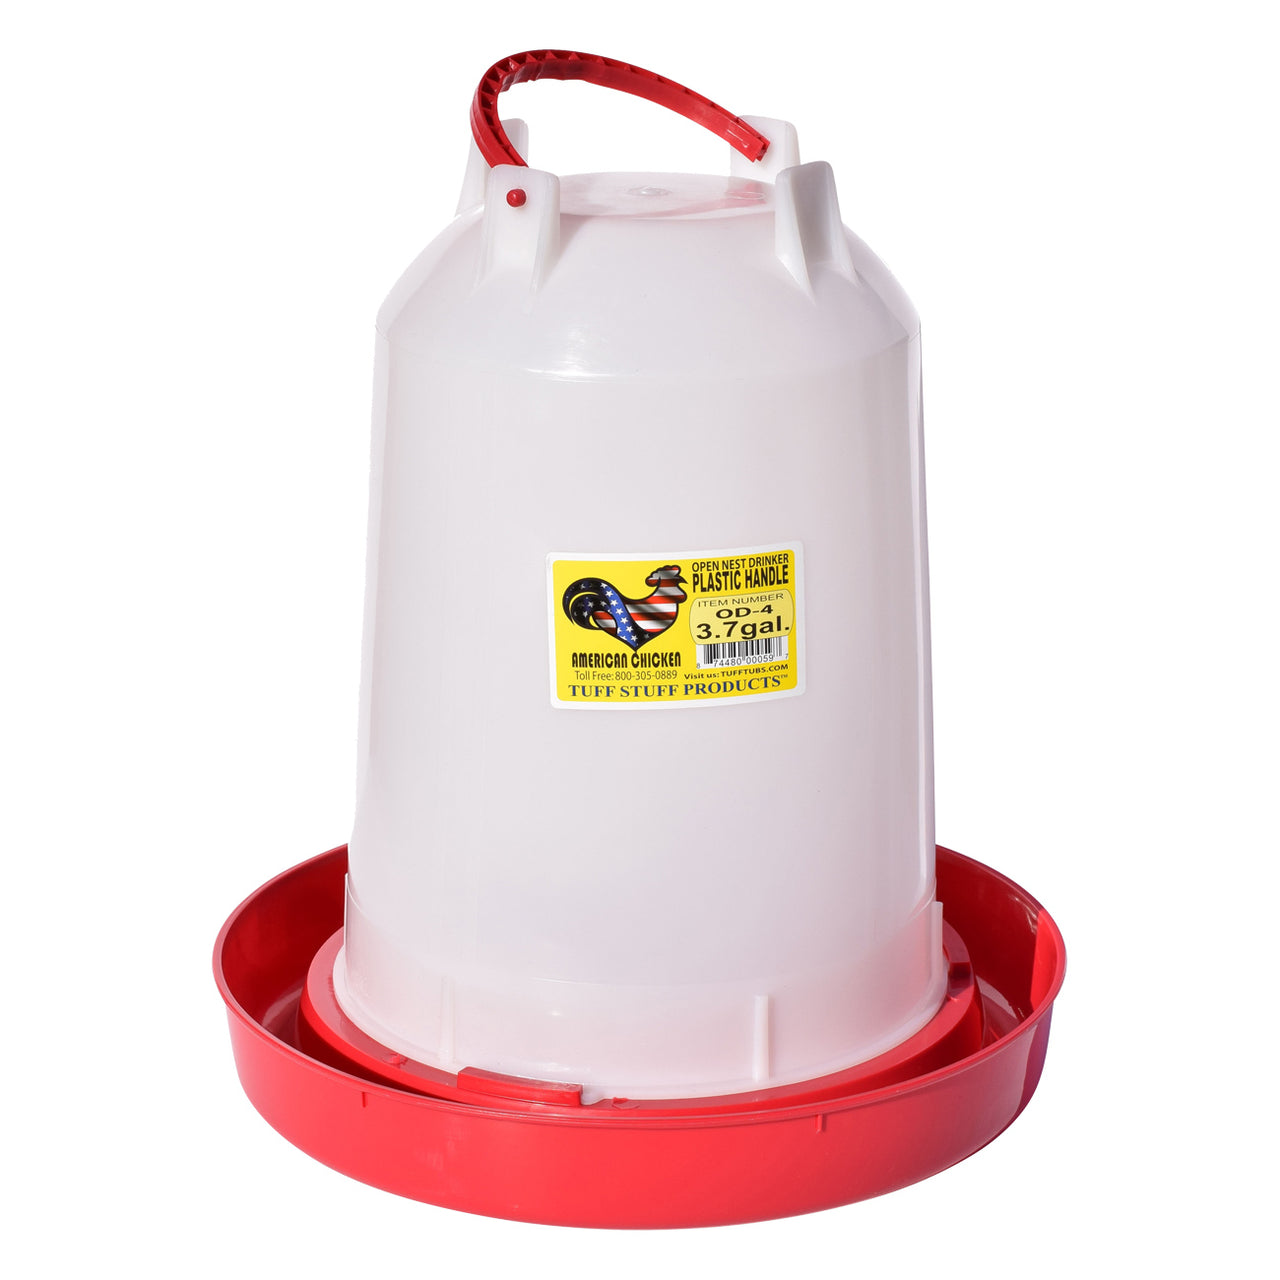 Tuff Stuff Poultry Open Nest Drinker Plastic Handle - 1.5Gal - Poultry Feeders Drinkers Tuff Stuff - Canada